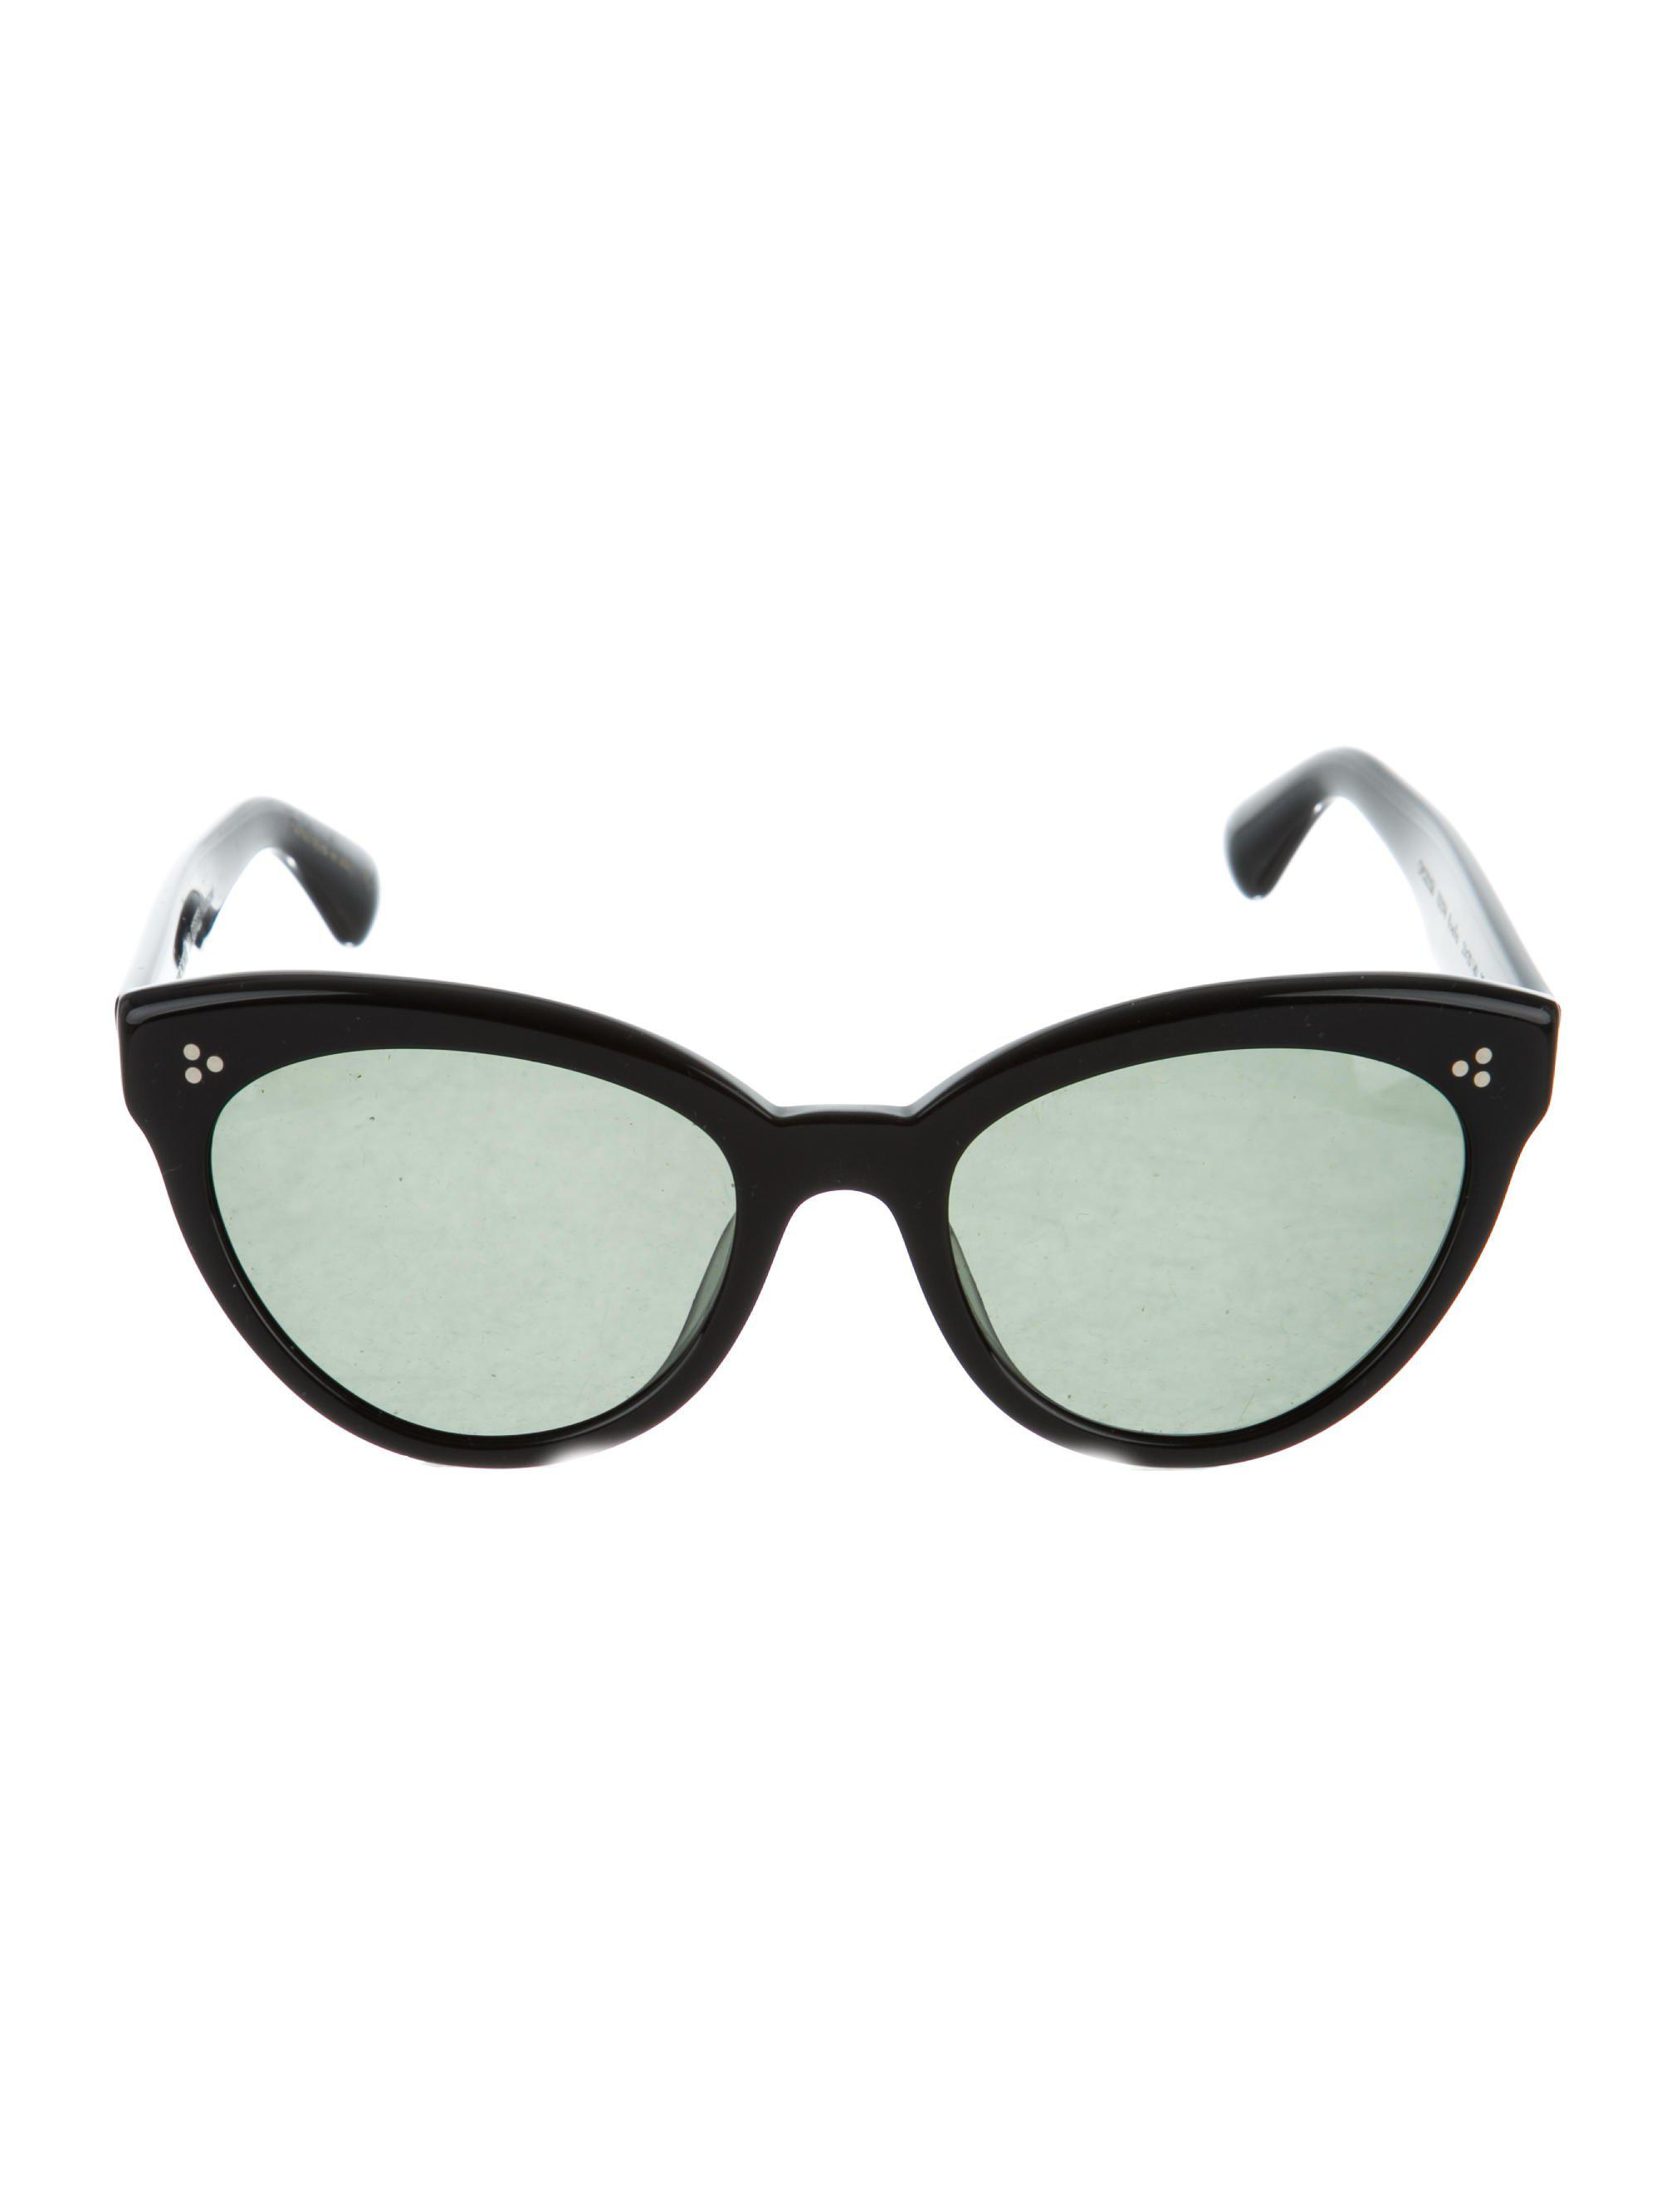 b9870ef43e Lyst - Oliver Peoples Roella Cat-eye Sunglasses in Black